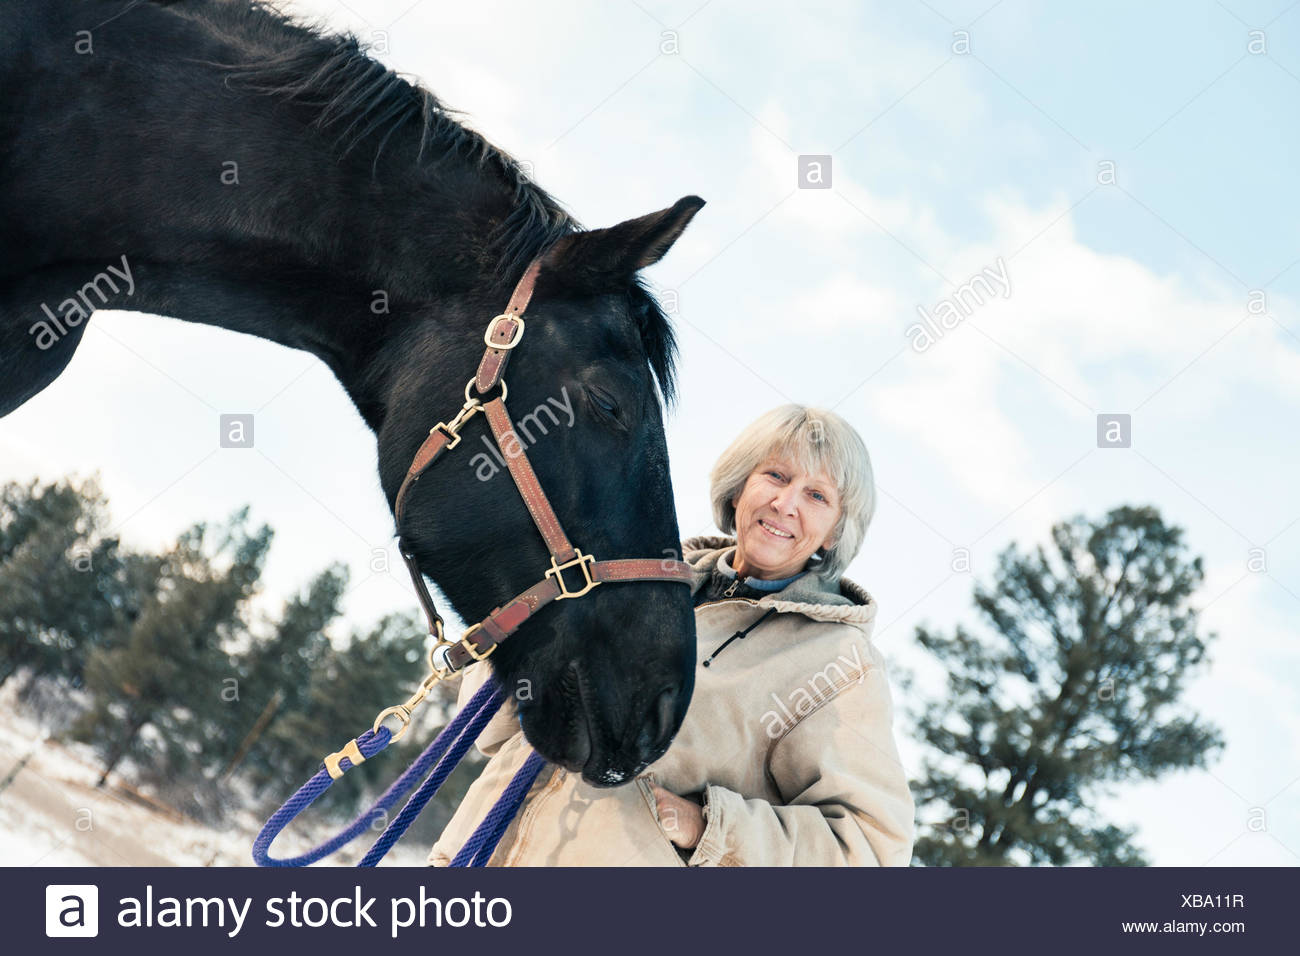 Senior adult woman standing with horse in snowy landscape Stock Photo